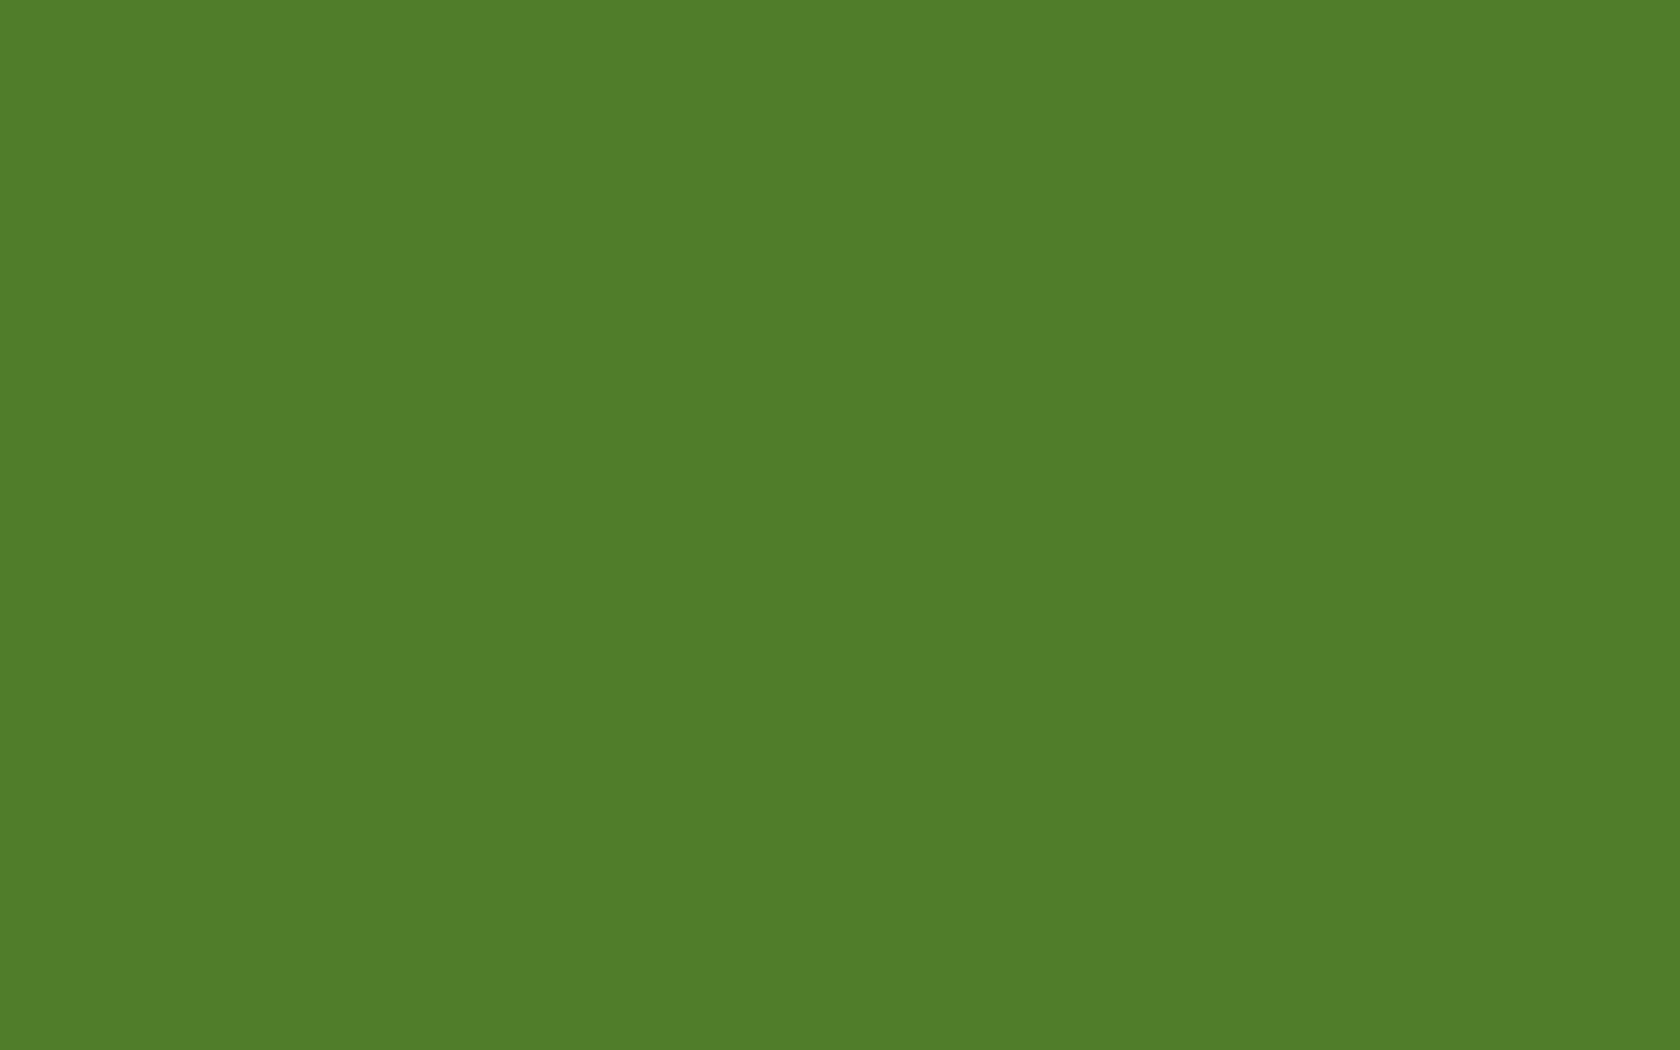 1680x1050 Sap Green Solid Color Background